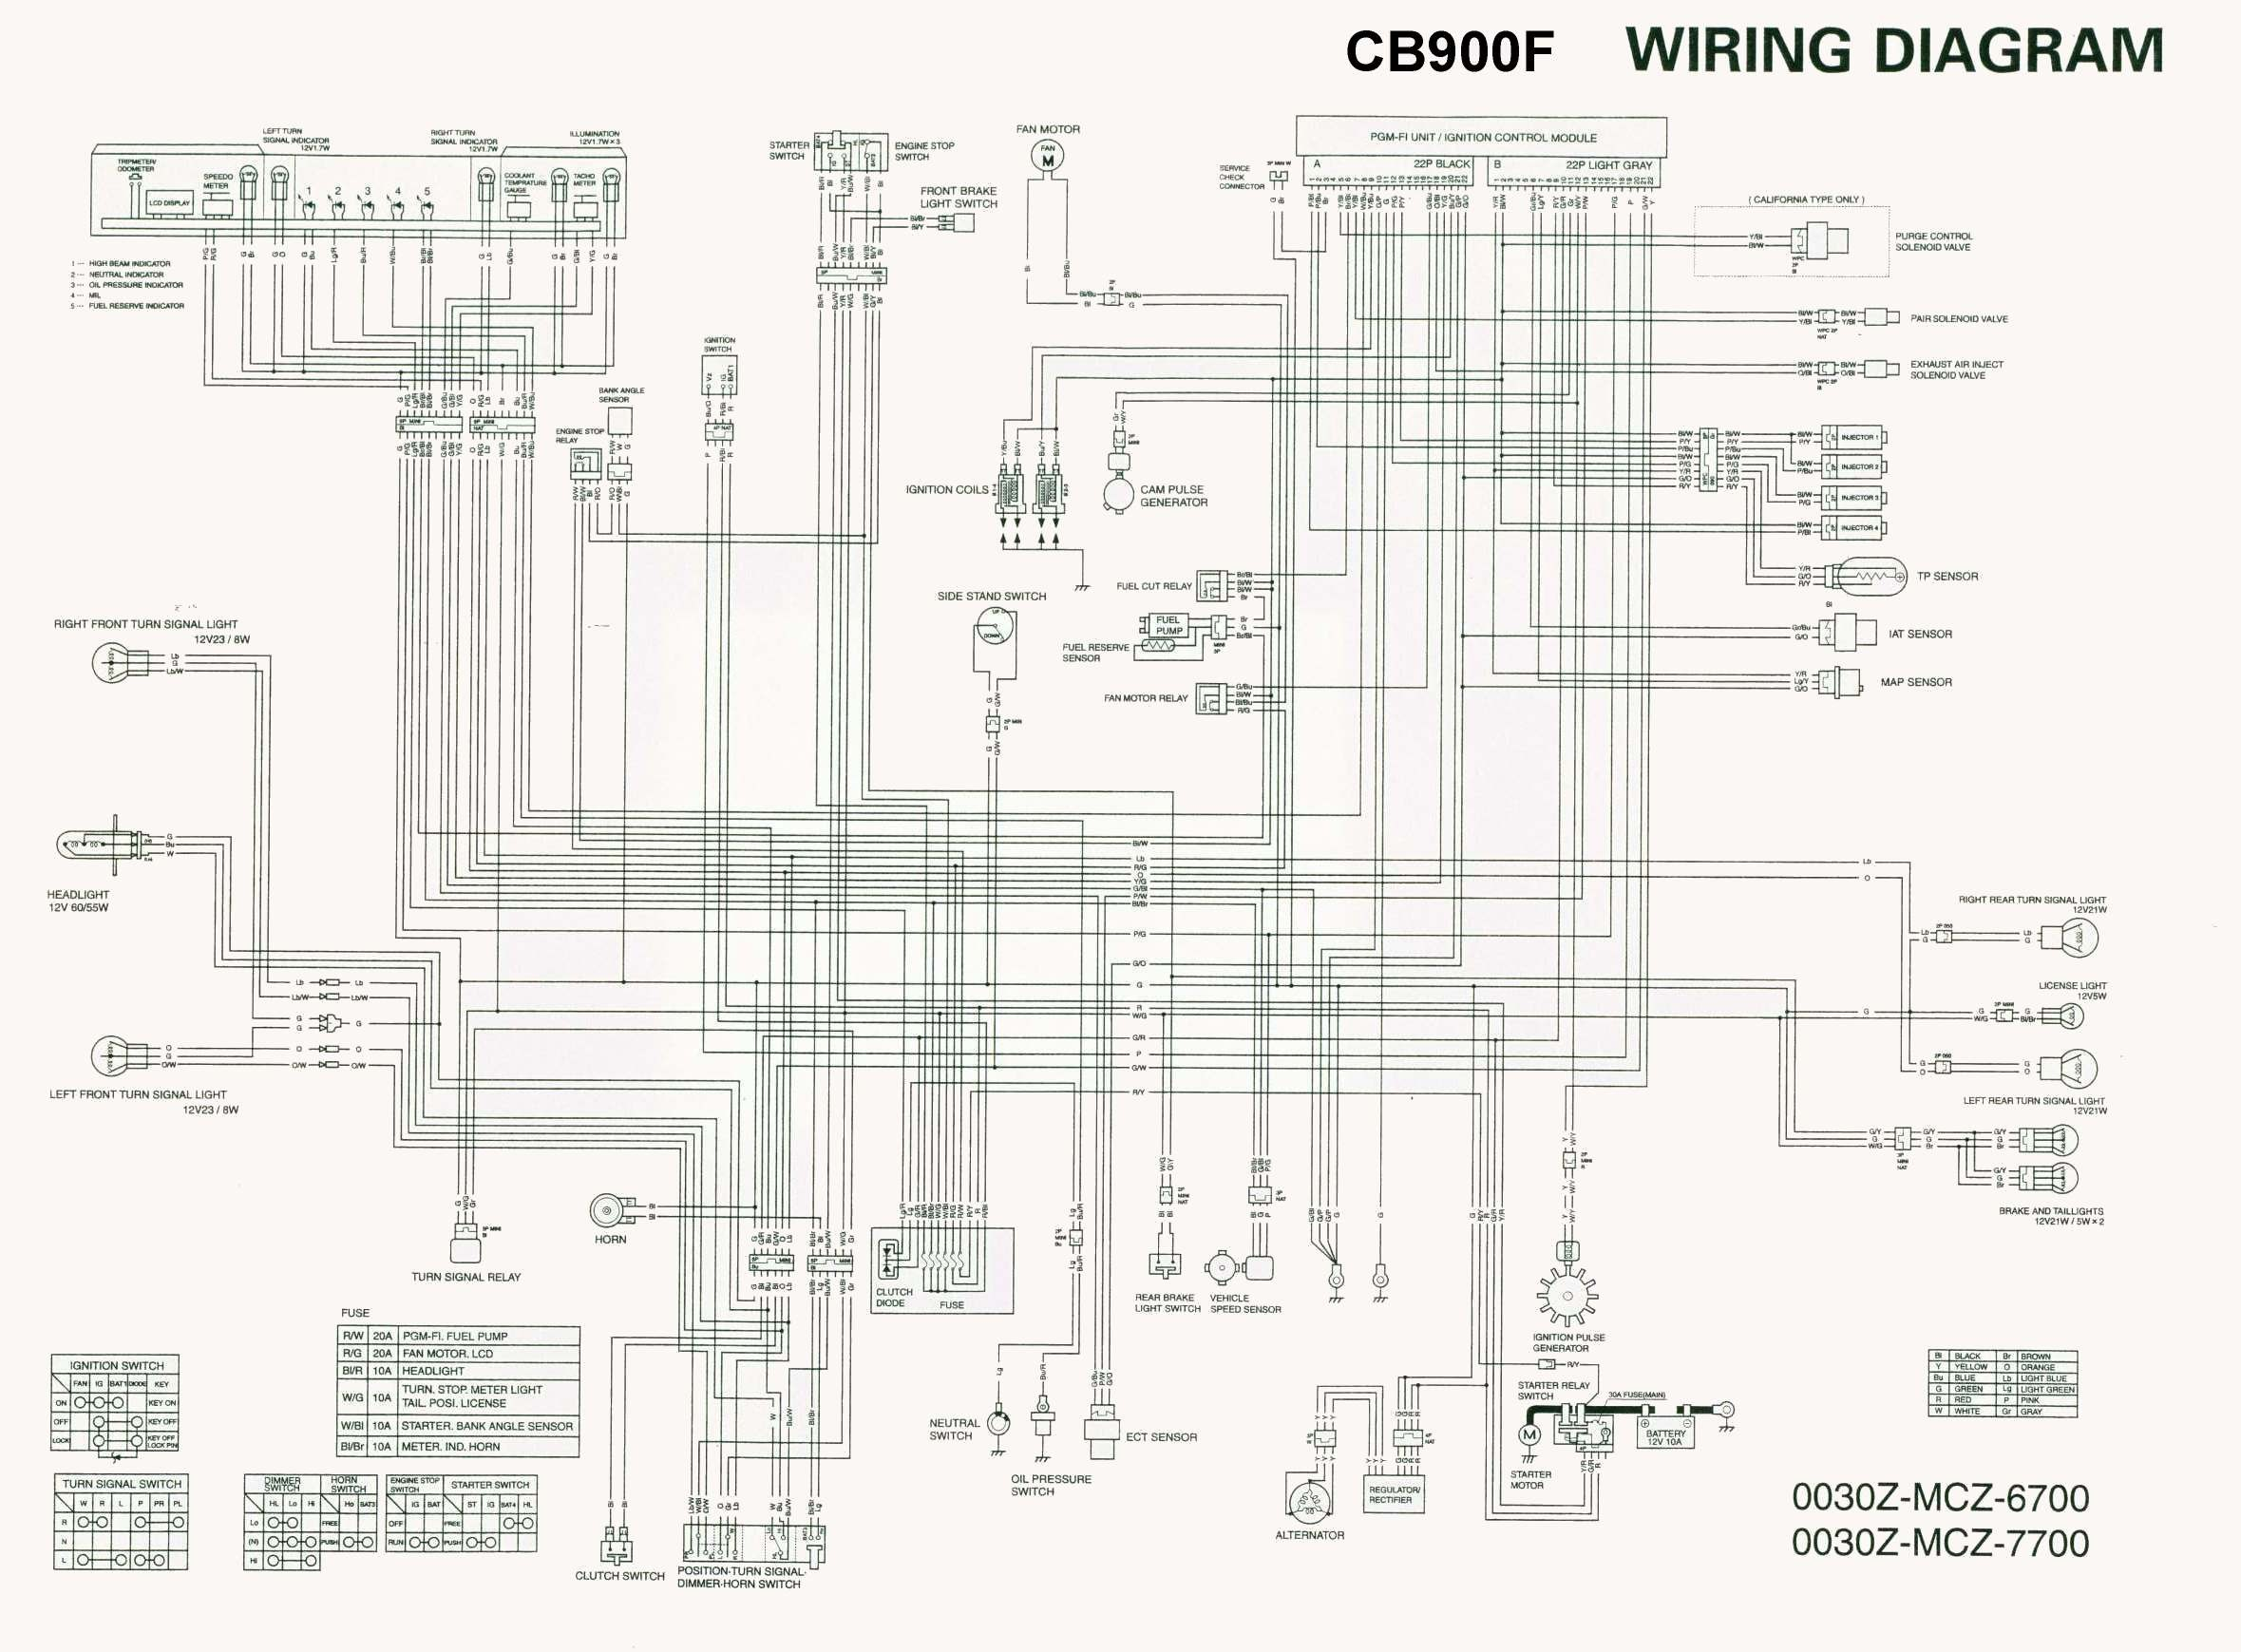 1991 Honda Accord Wiring Diagram Part 39 Wiring Diagram